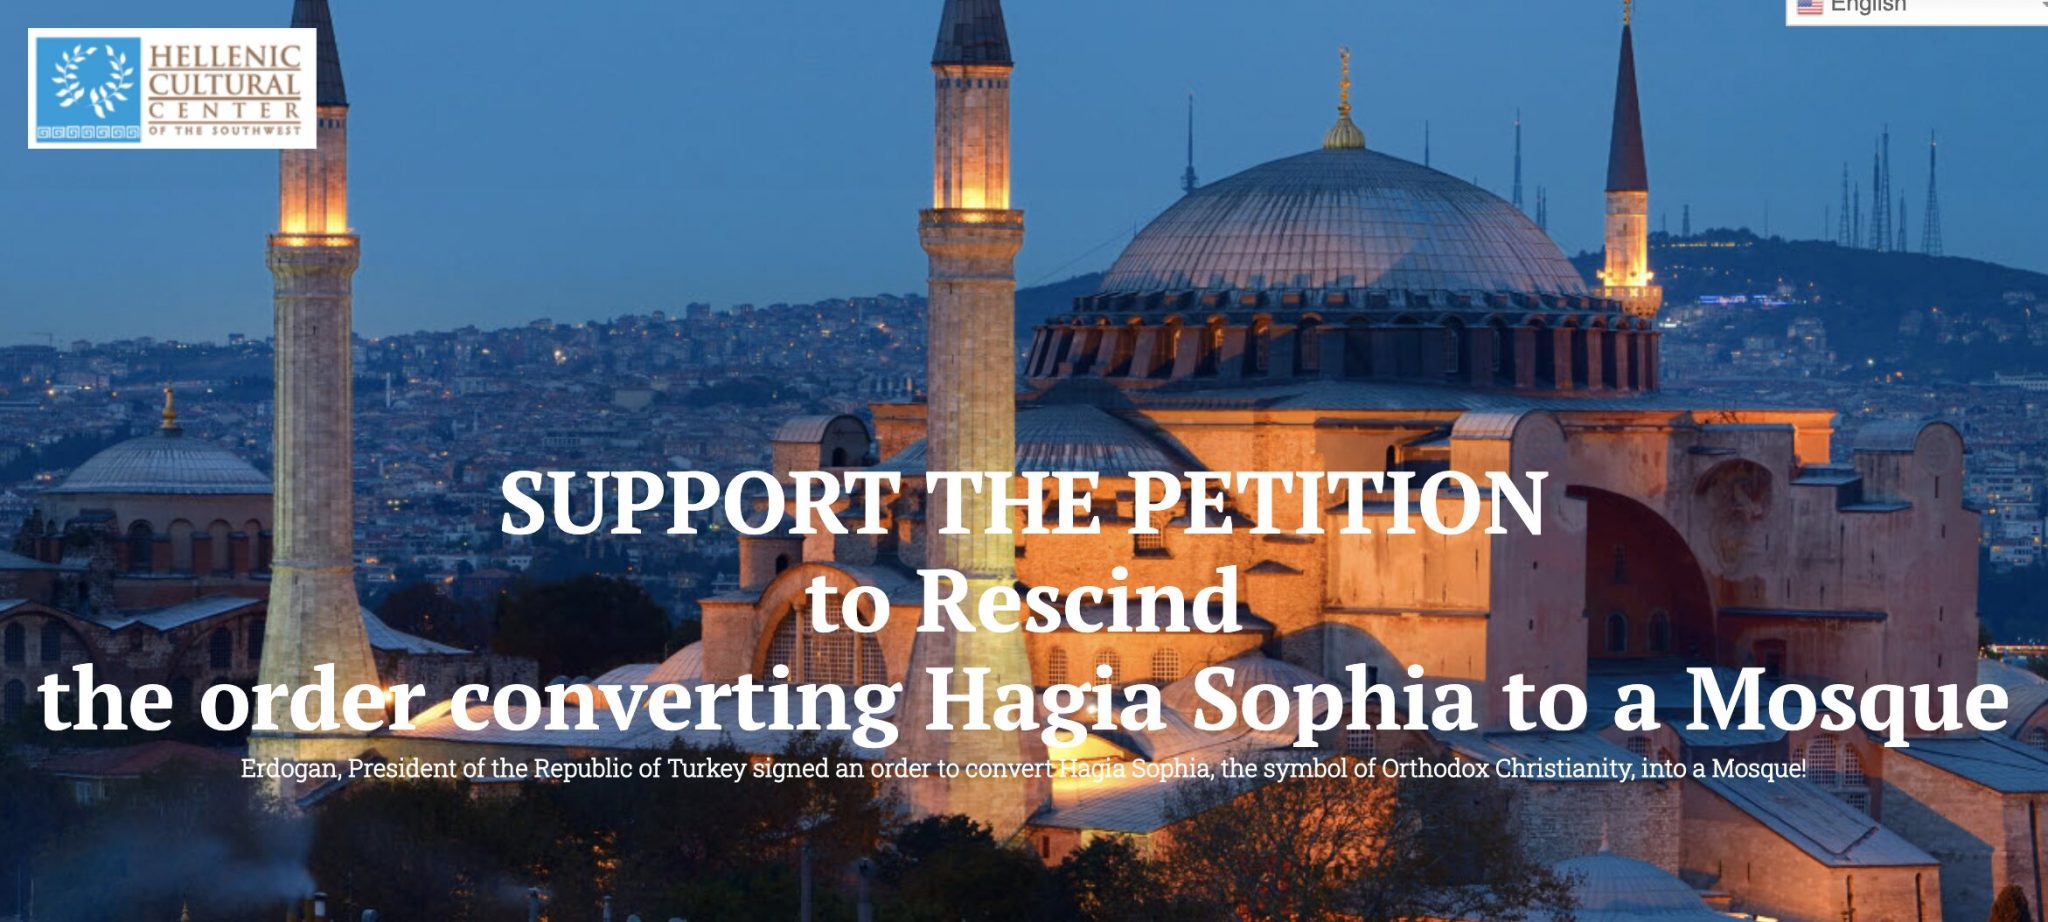 SUPPORT THE PETITION to Rescind the order converting Hagia Sophia to a Mosque!